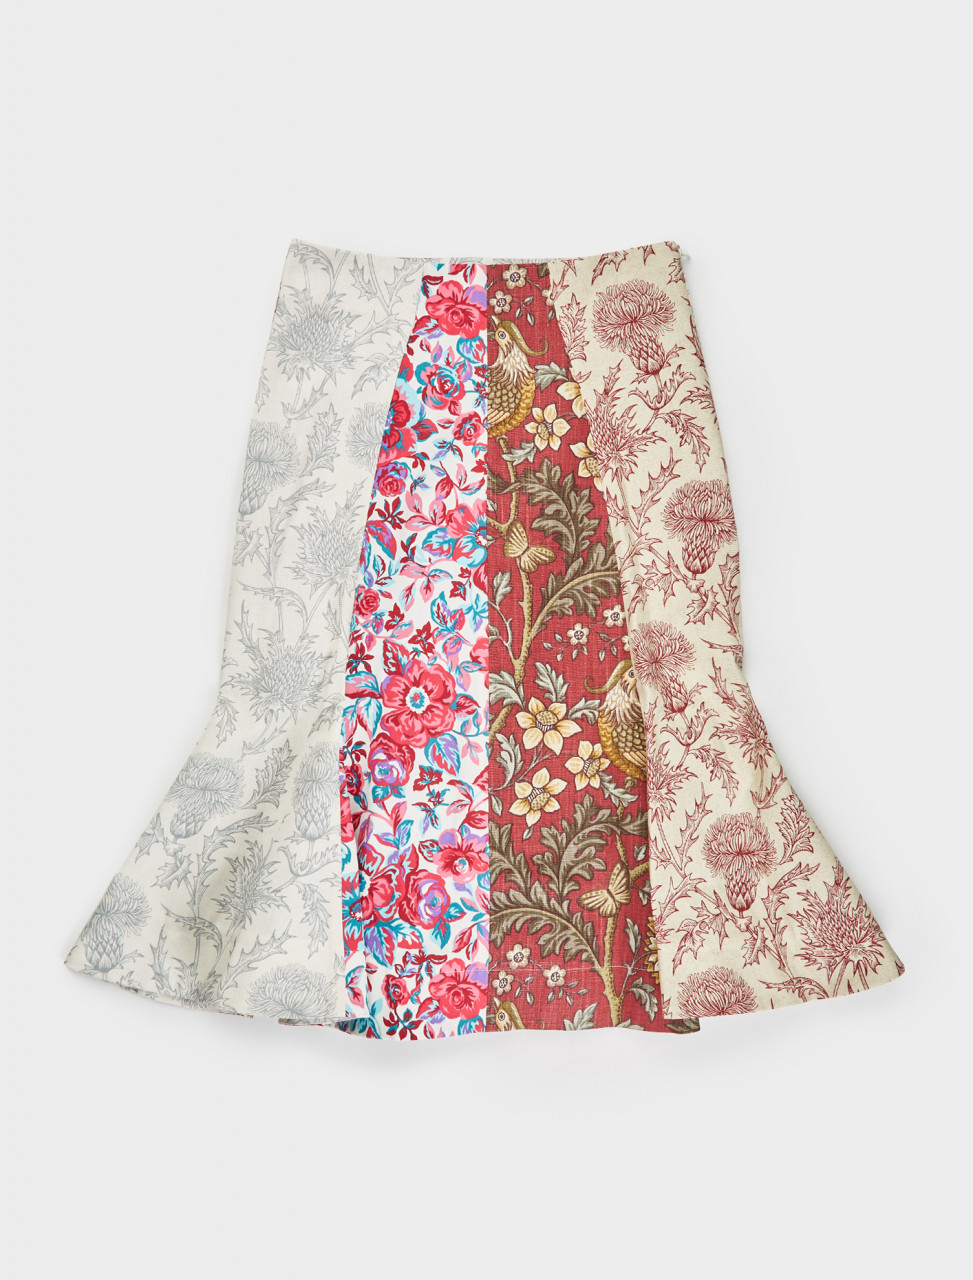 Marine Serre Regenerated Curtains Skirt in White Print